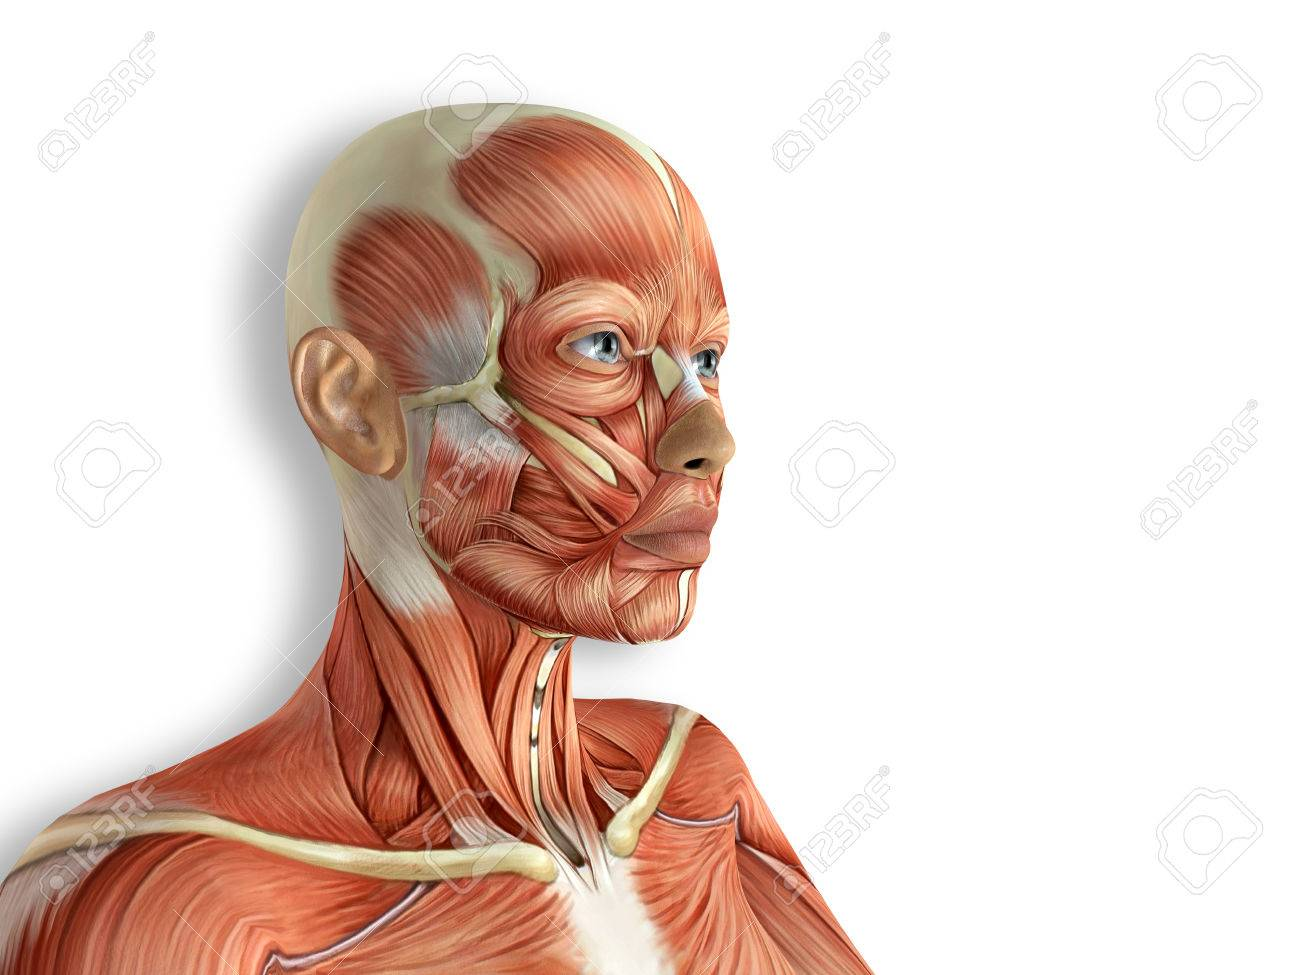 Female Face Muscles Anatomy 3d Rendered Illustration Stock Photo